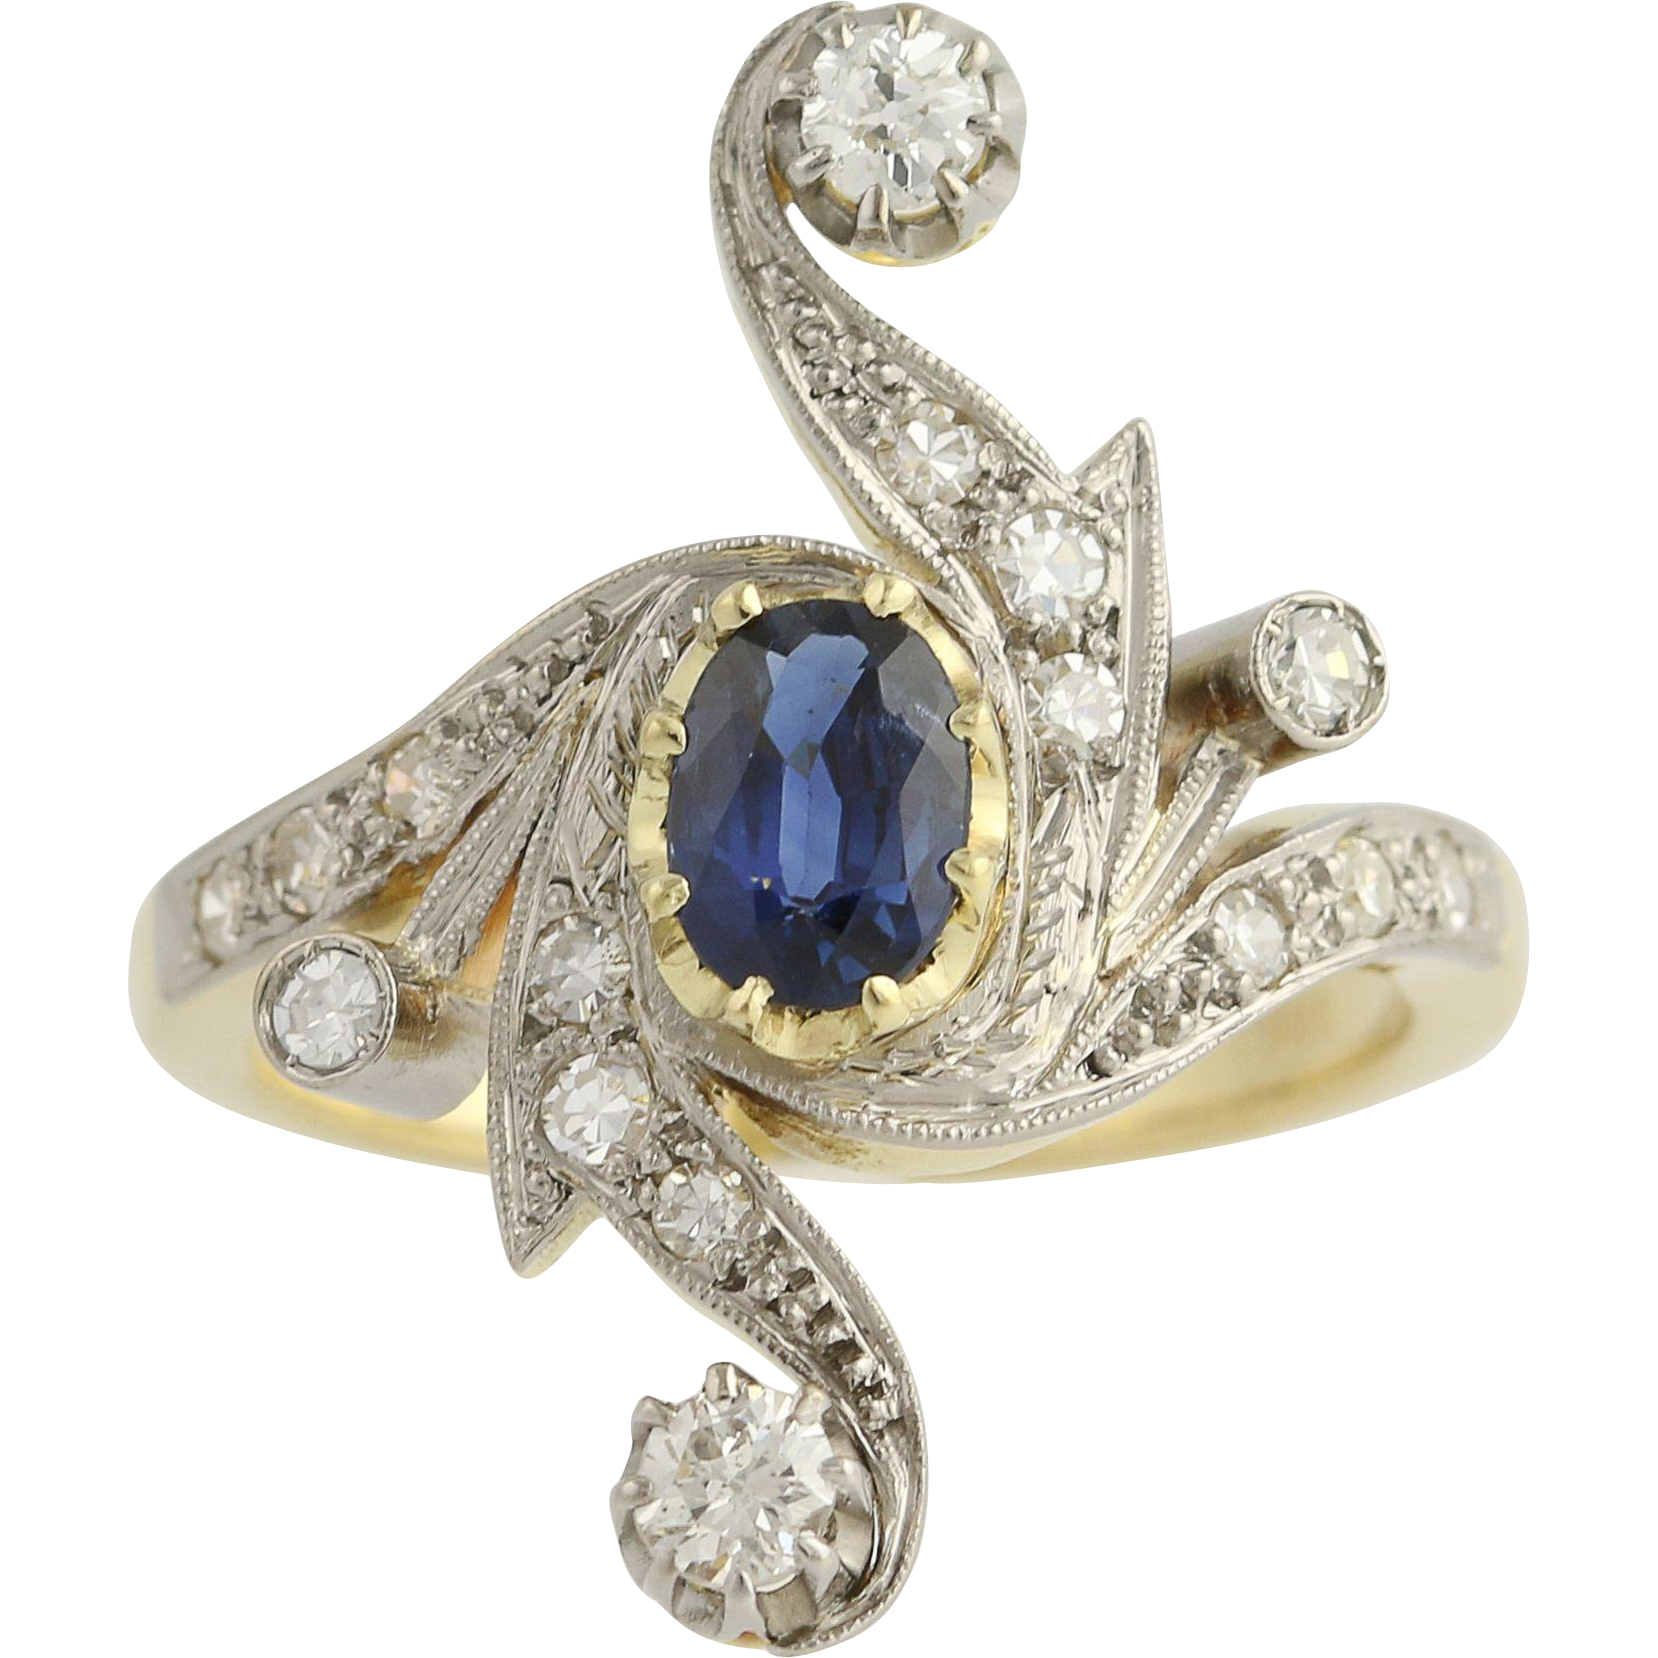 Art Deco Sapphire & Diamond Cocktail Ring - 18k Yellow White Gold Vintage 1.34